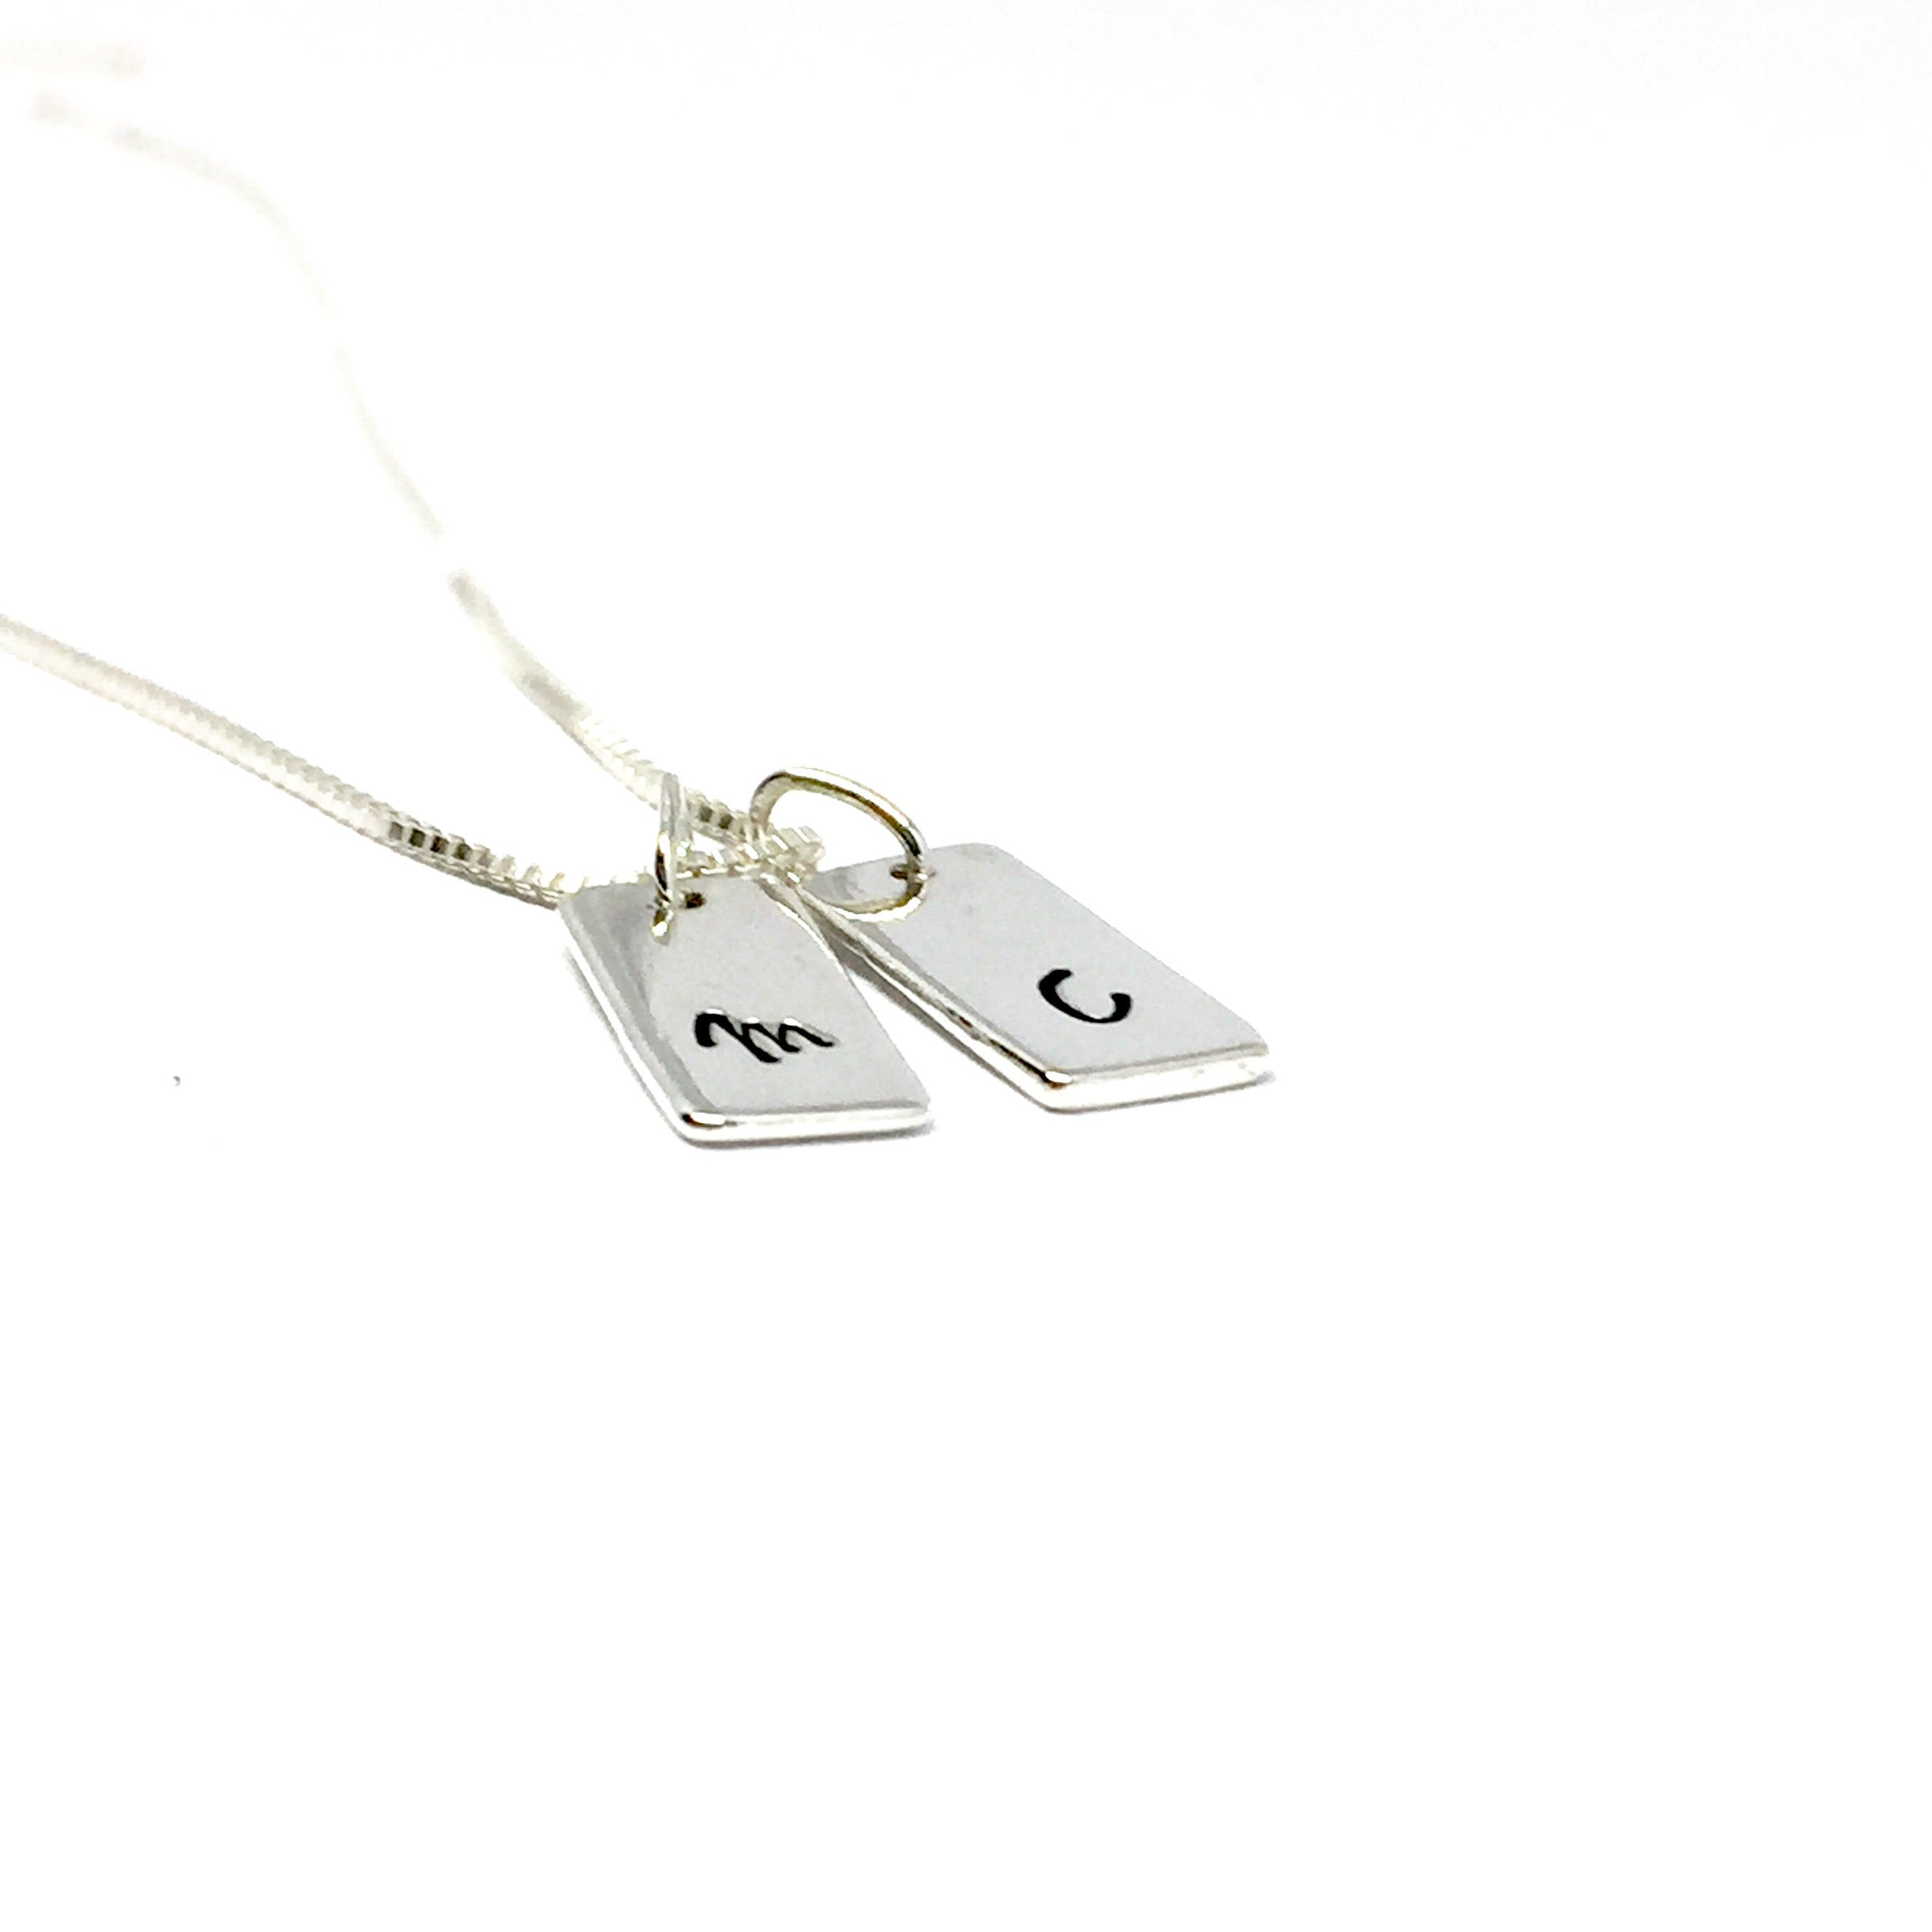 ca7d0f9a1 Sterling Silver Mini Tag Necklace - Custom Stamped $40 - Contagious ...